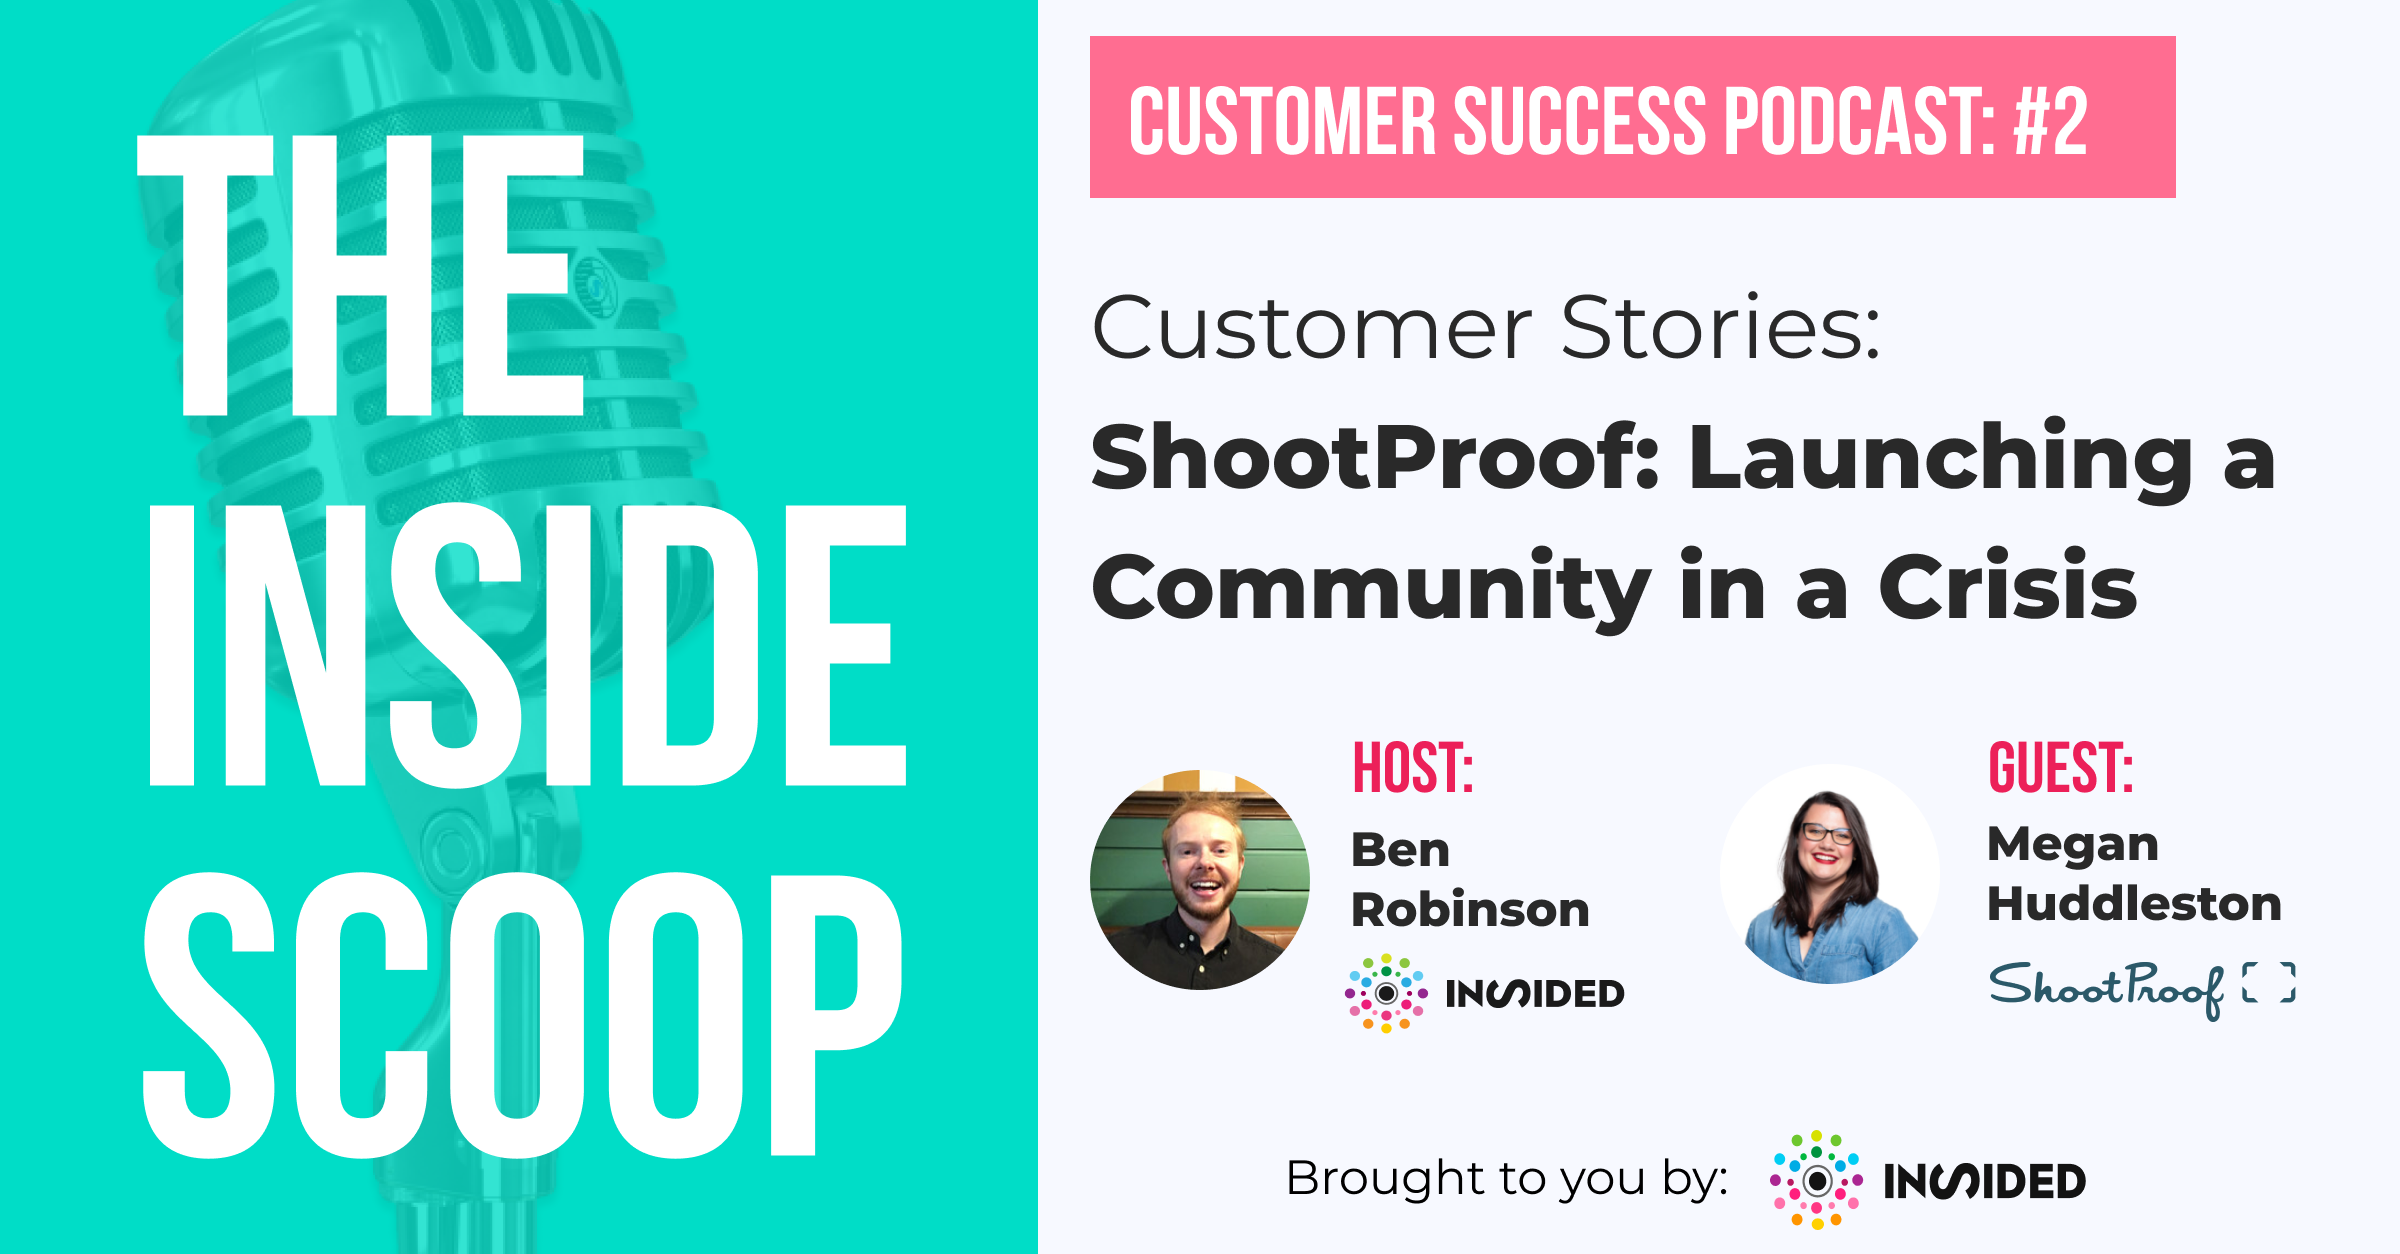 ShootProof launching a community in a crisis